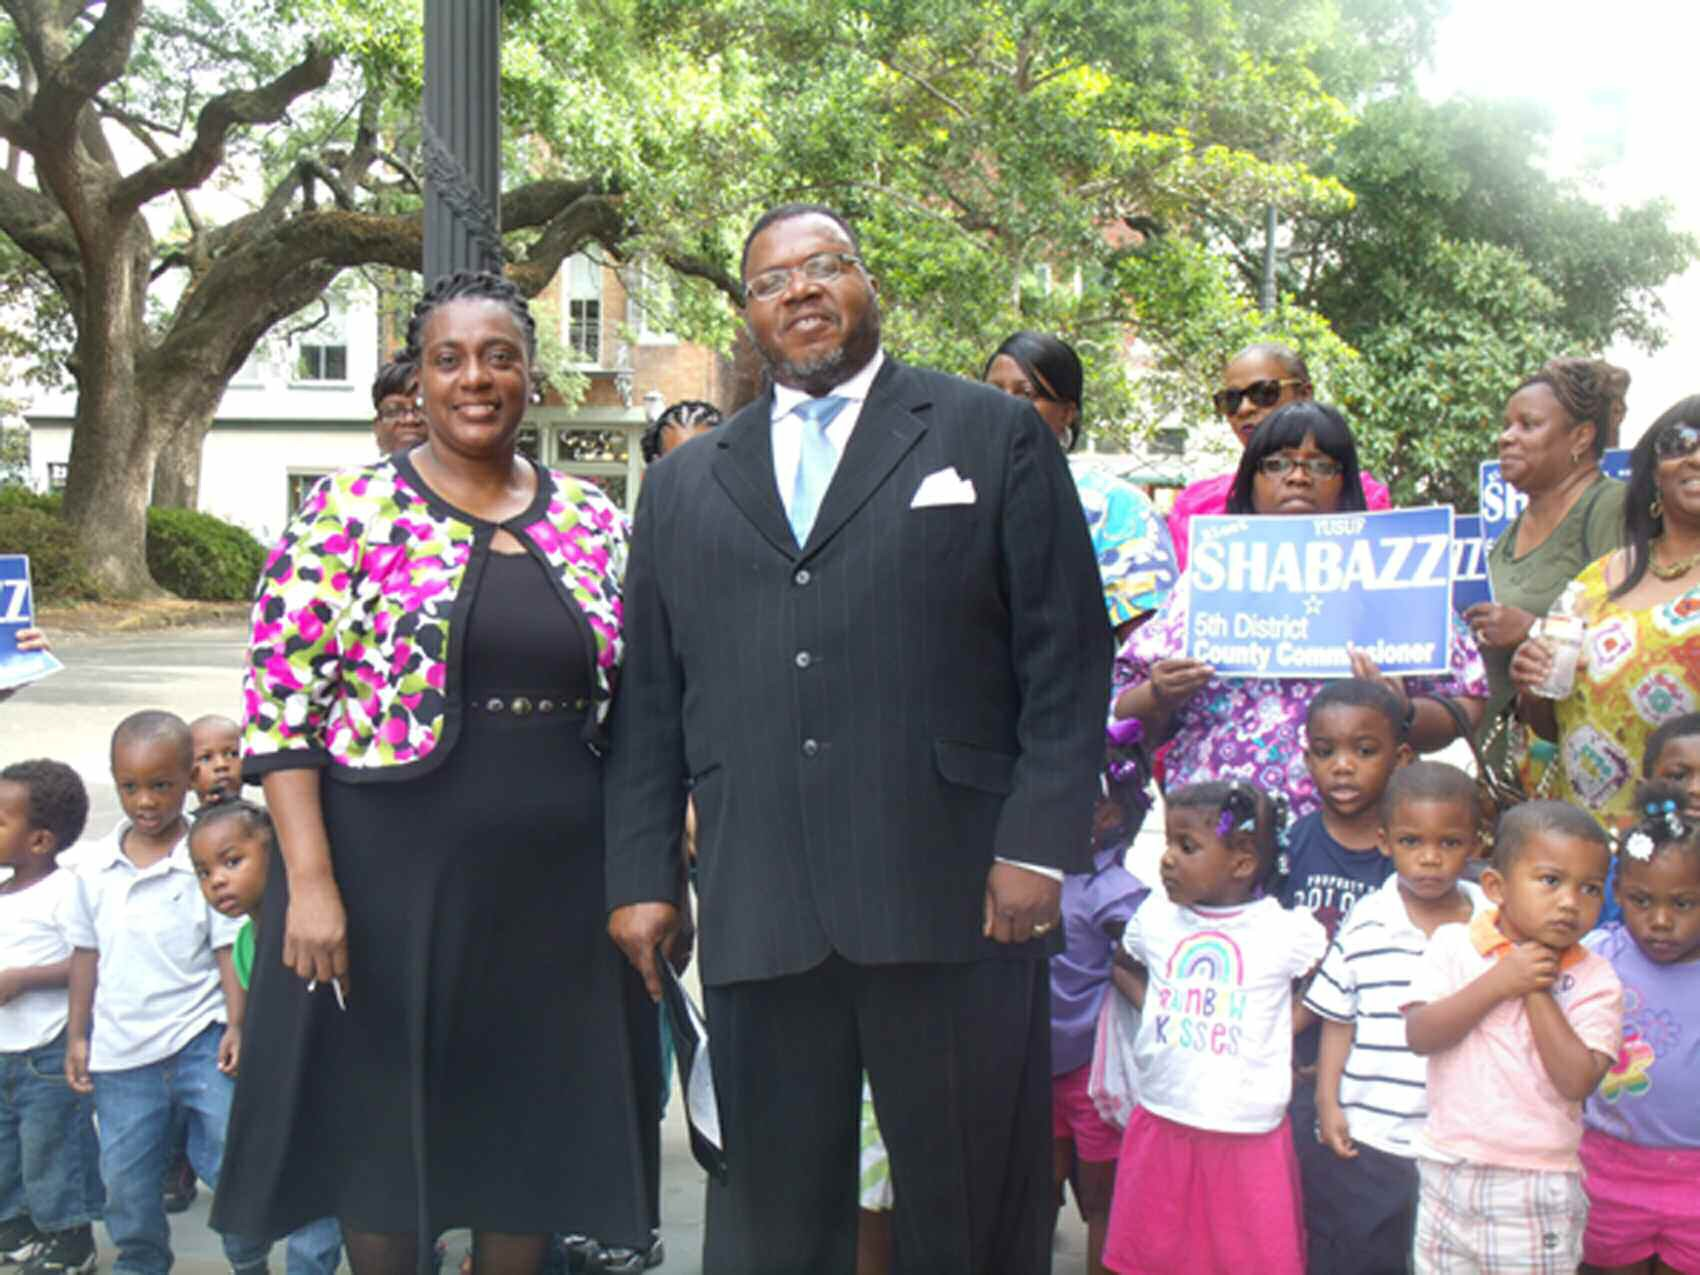 Shabazz pictured with his wife and supporters at the Old Chatham County Courthouse